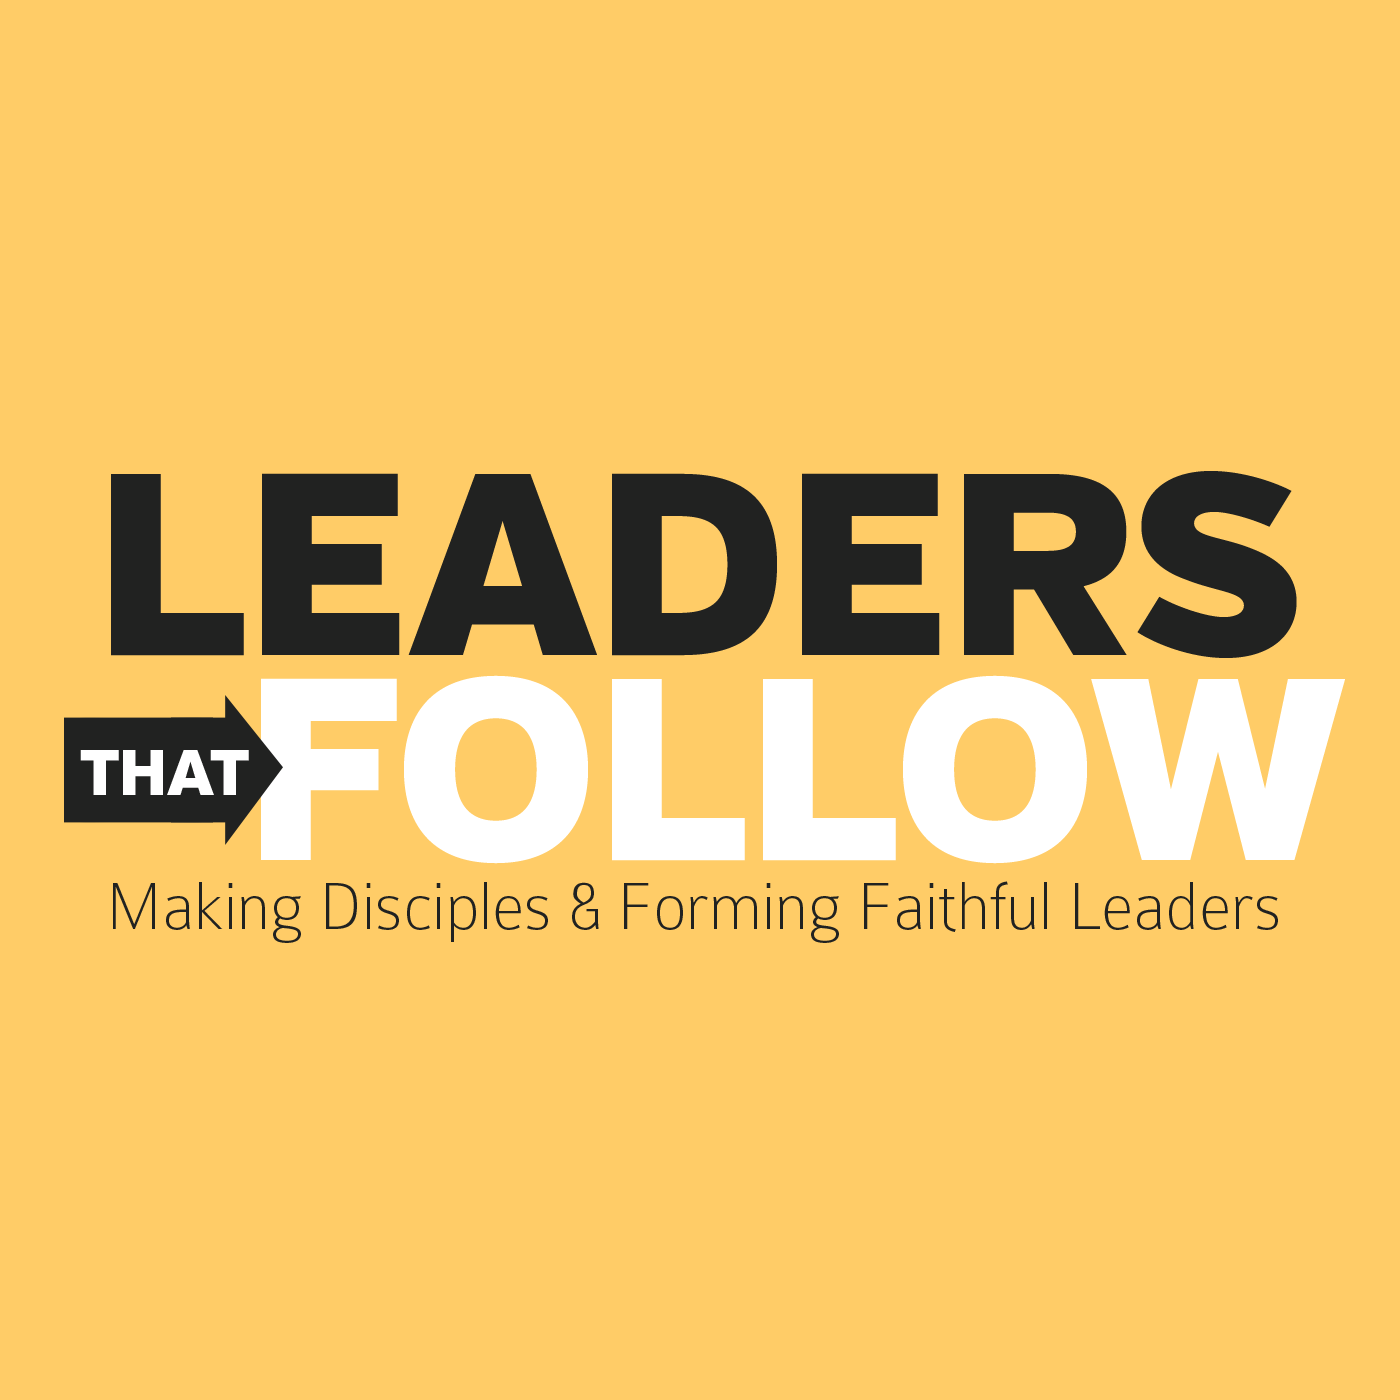 Leaders that Follow